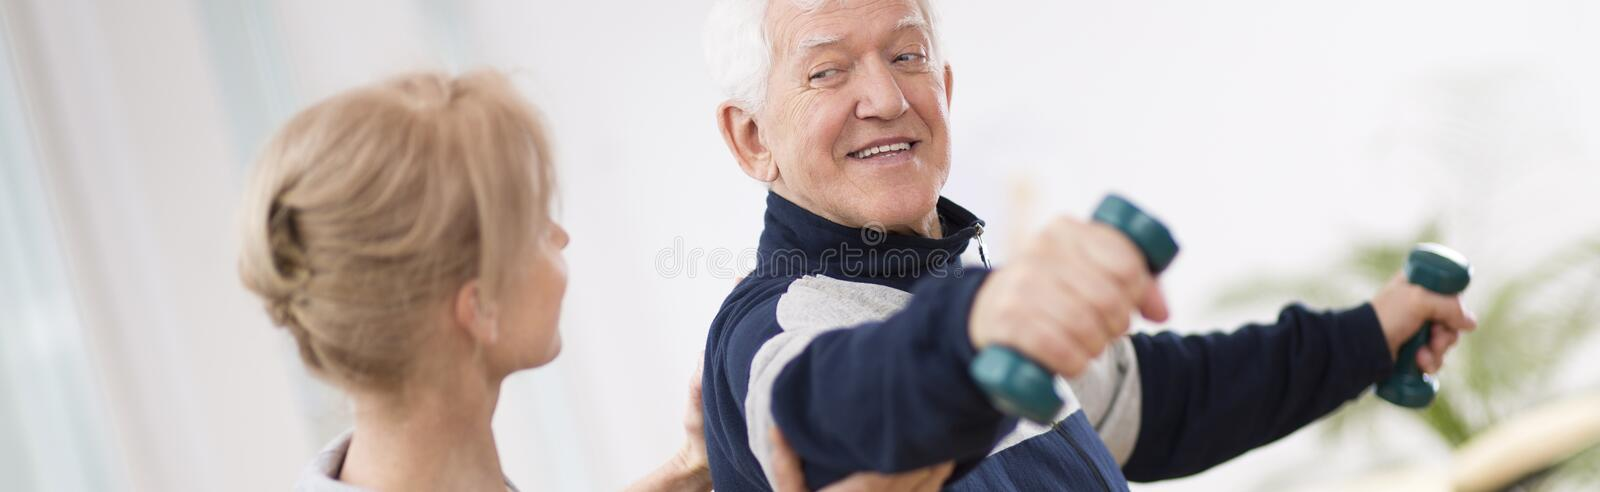 Senior man after stroke at nursing home exercising with professional physiotherapist royalty free stock photography